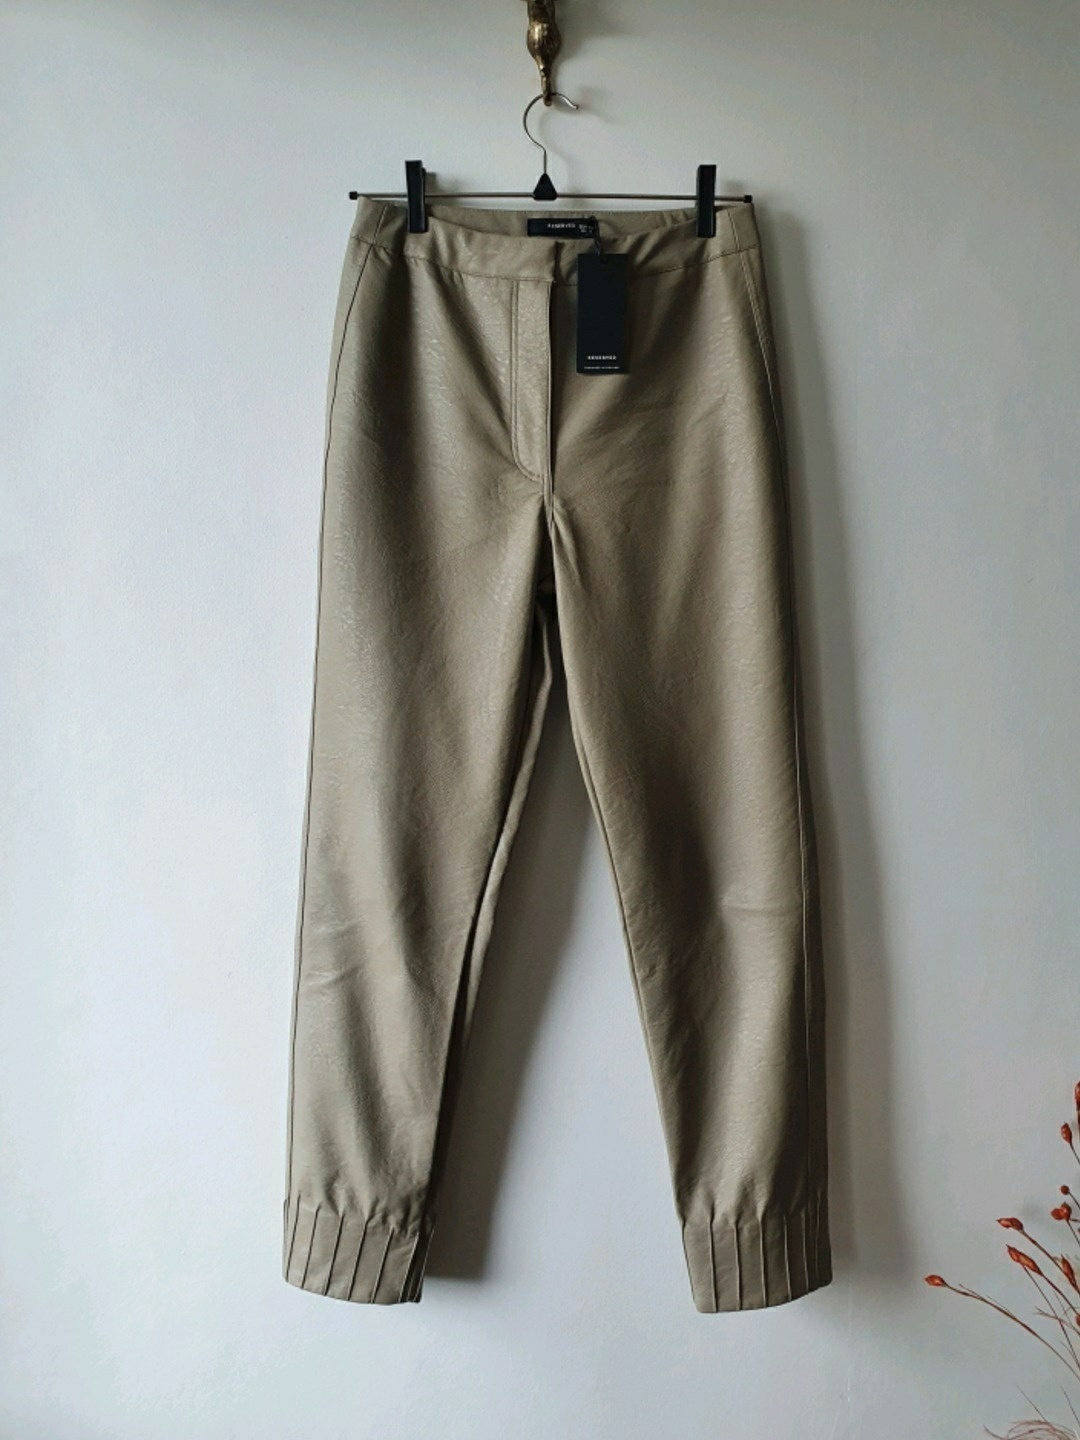 Women's trousers & jeans - RESERVED photo 3